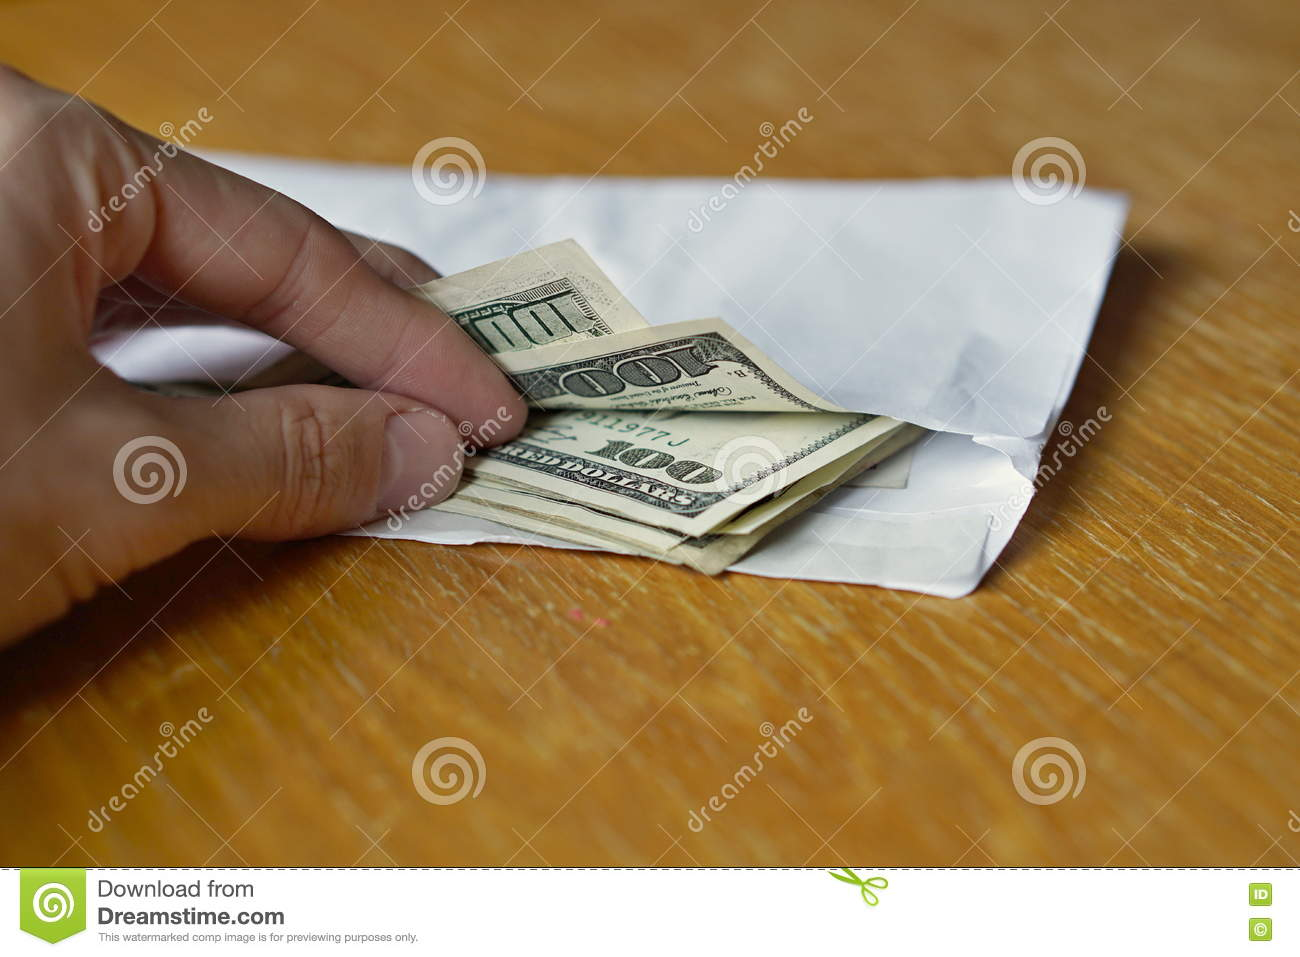 Symbol for usd choice image symbols and meanings male hand opening a white envelope full of american dollars usd us royalty free stock photo buycottarizona Gallery